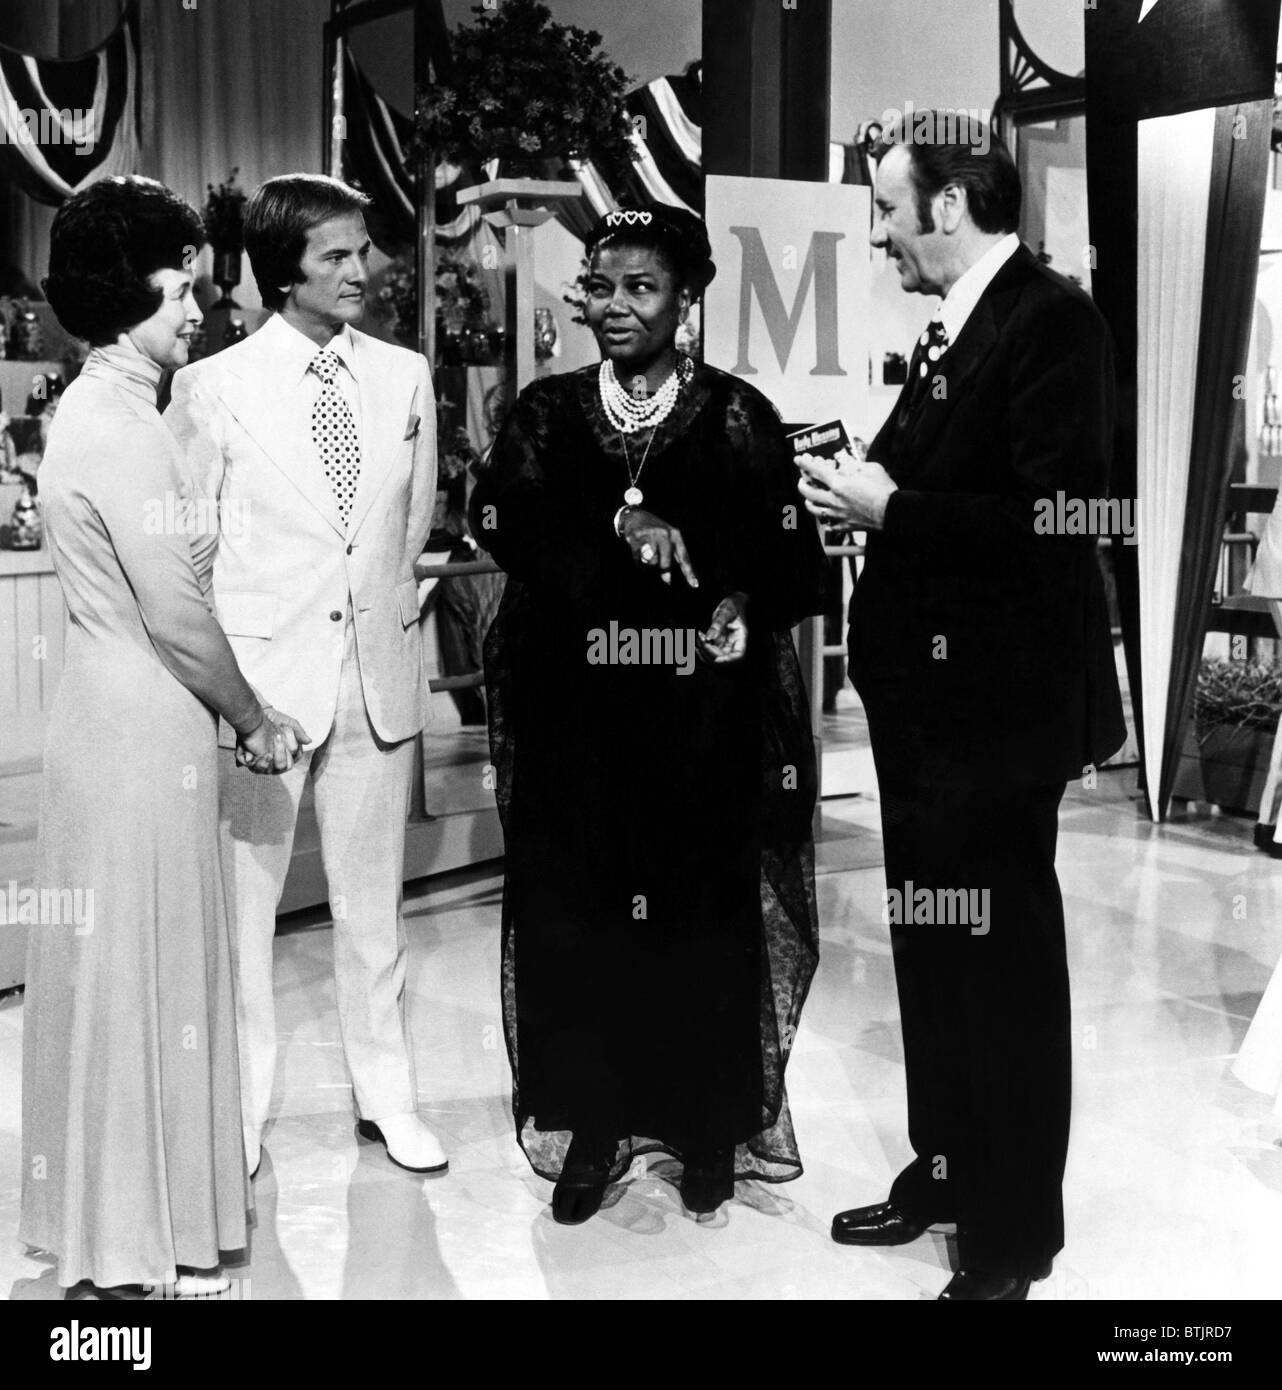 Evelyn Roberts, Pat Boone, Pearl Bailey, Oral Roberts, on the television program 'Summer 74', 1974. - Stock Image